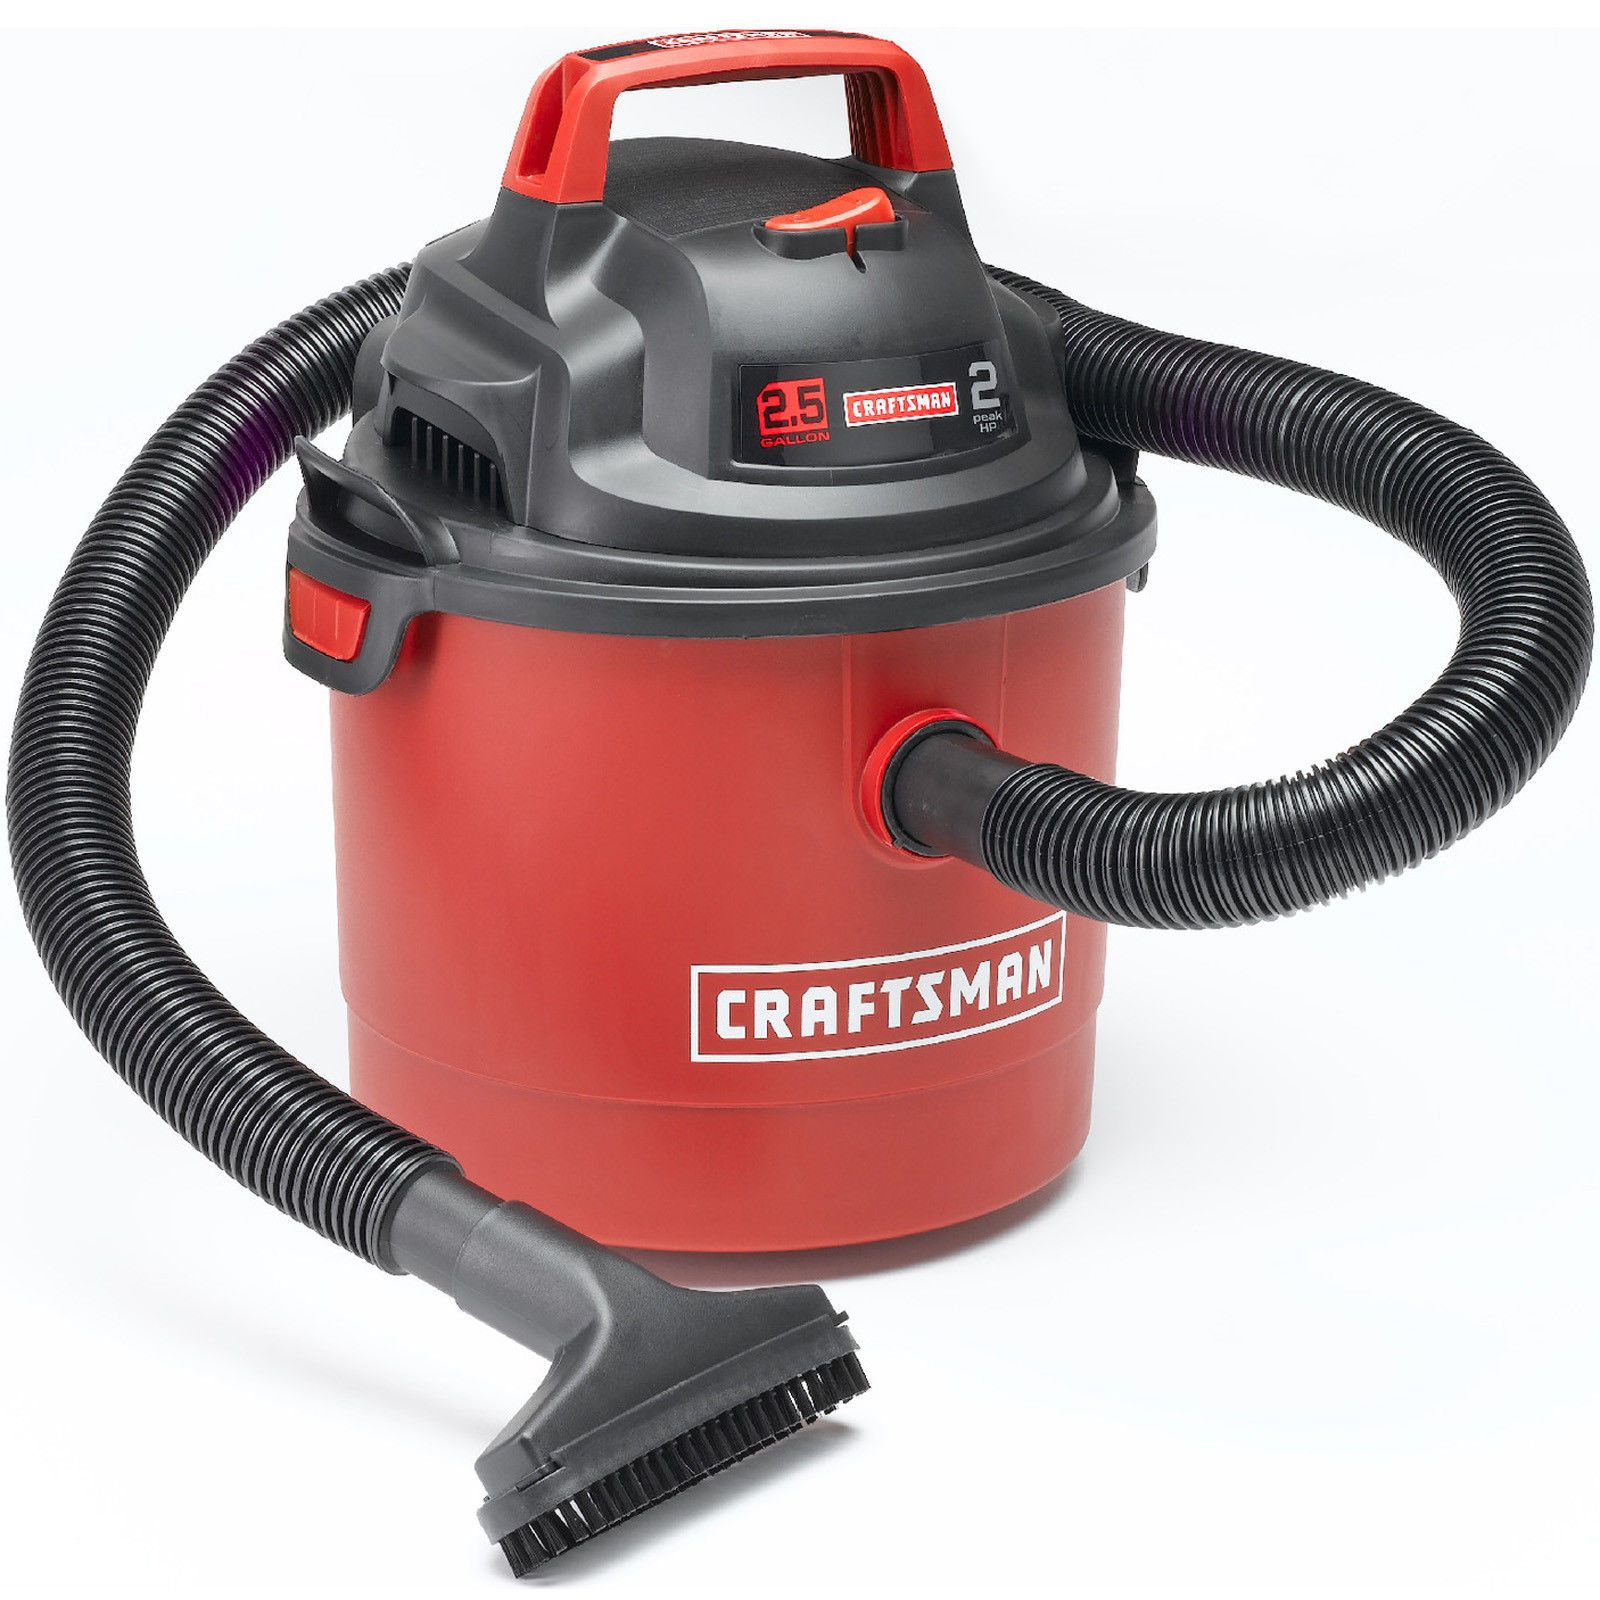 US-Deals Cars Craftsman Portable Vacuum Cleaner Wet Dry ...